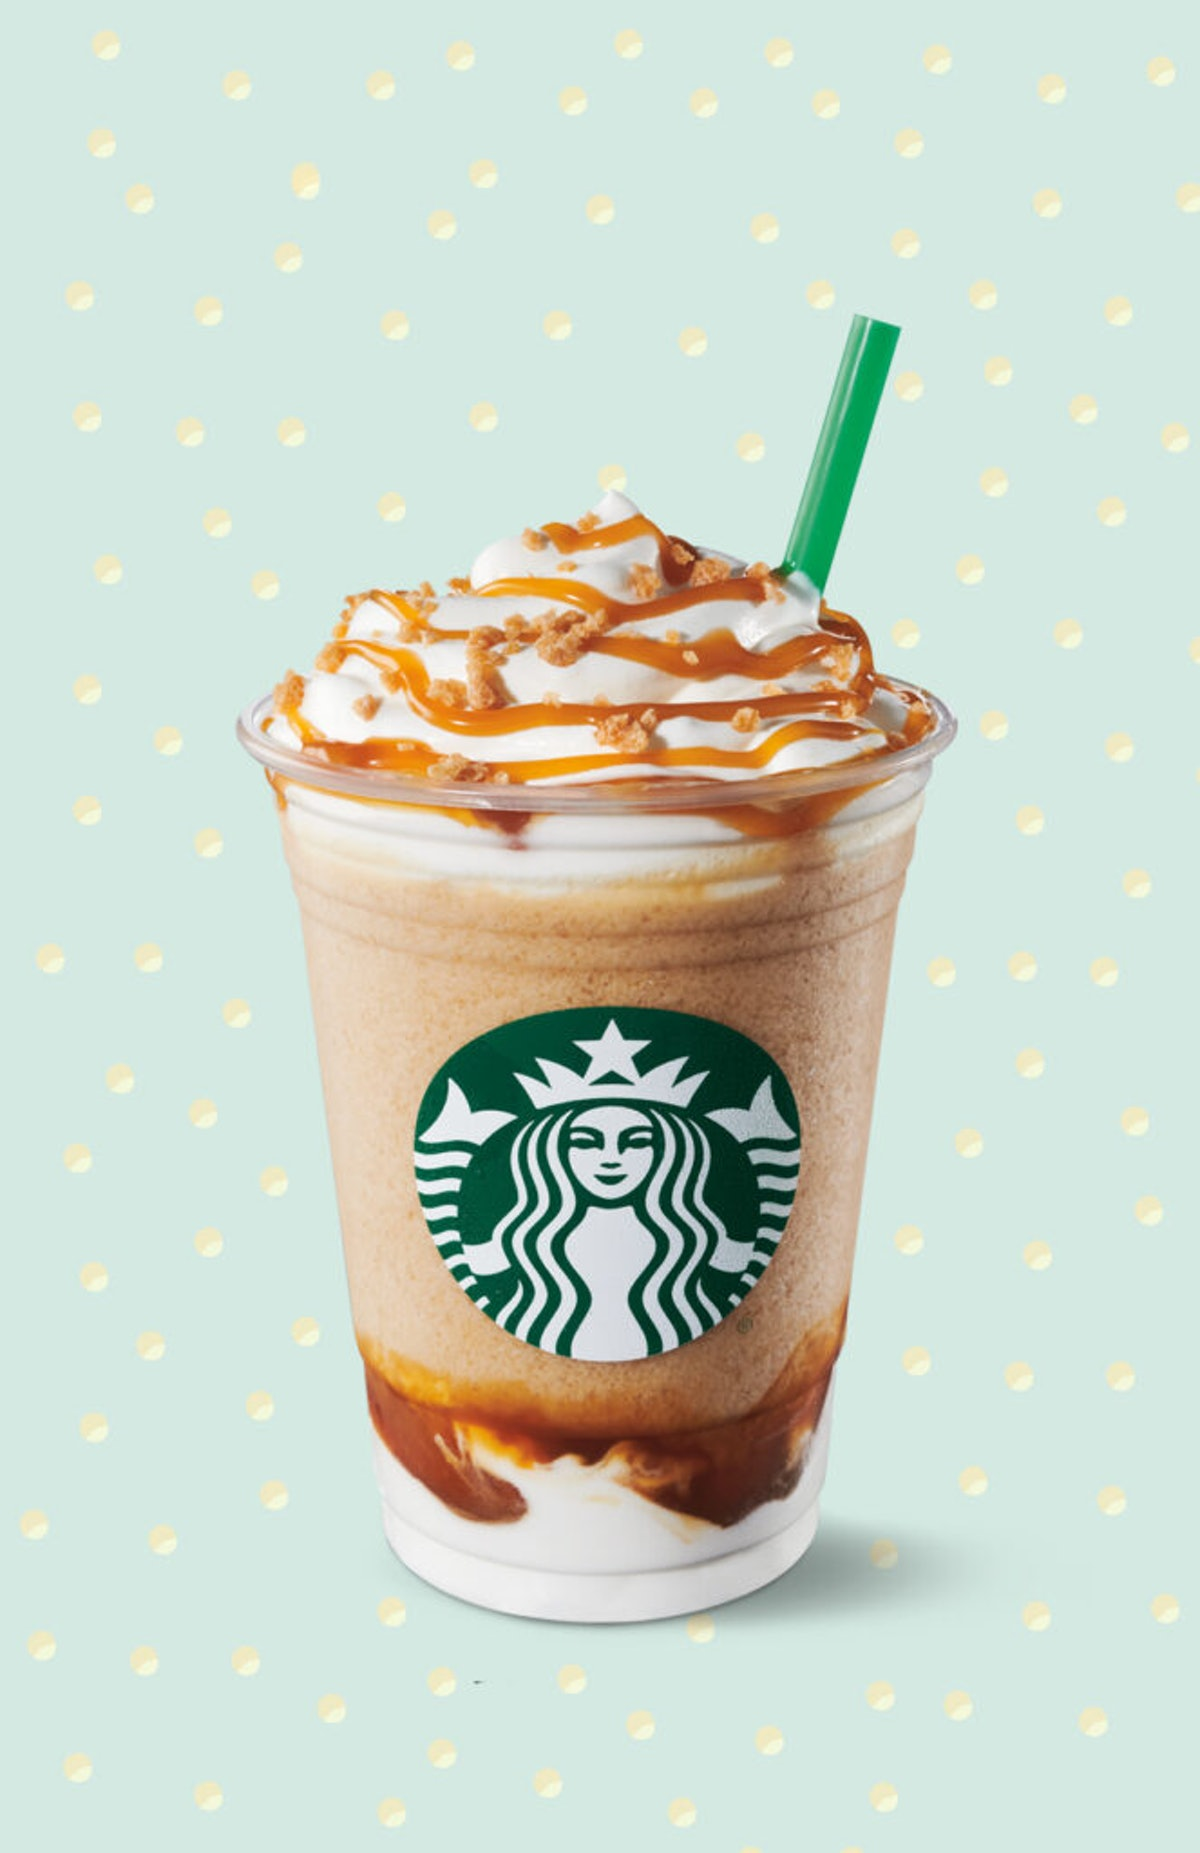 These decaf Starbucks drinks won't keep you up all night.